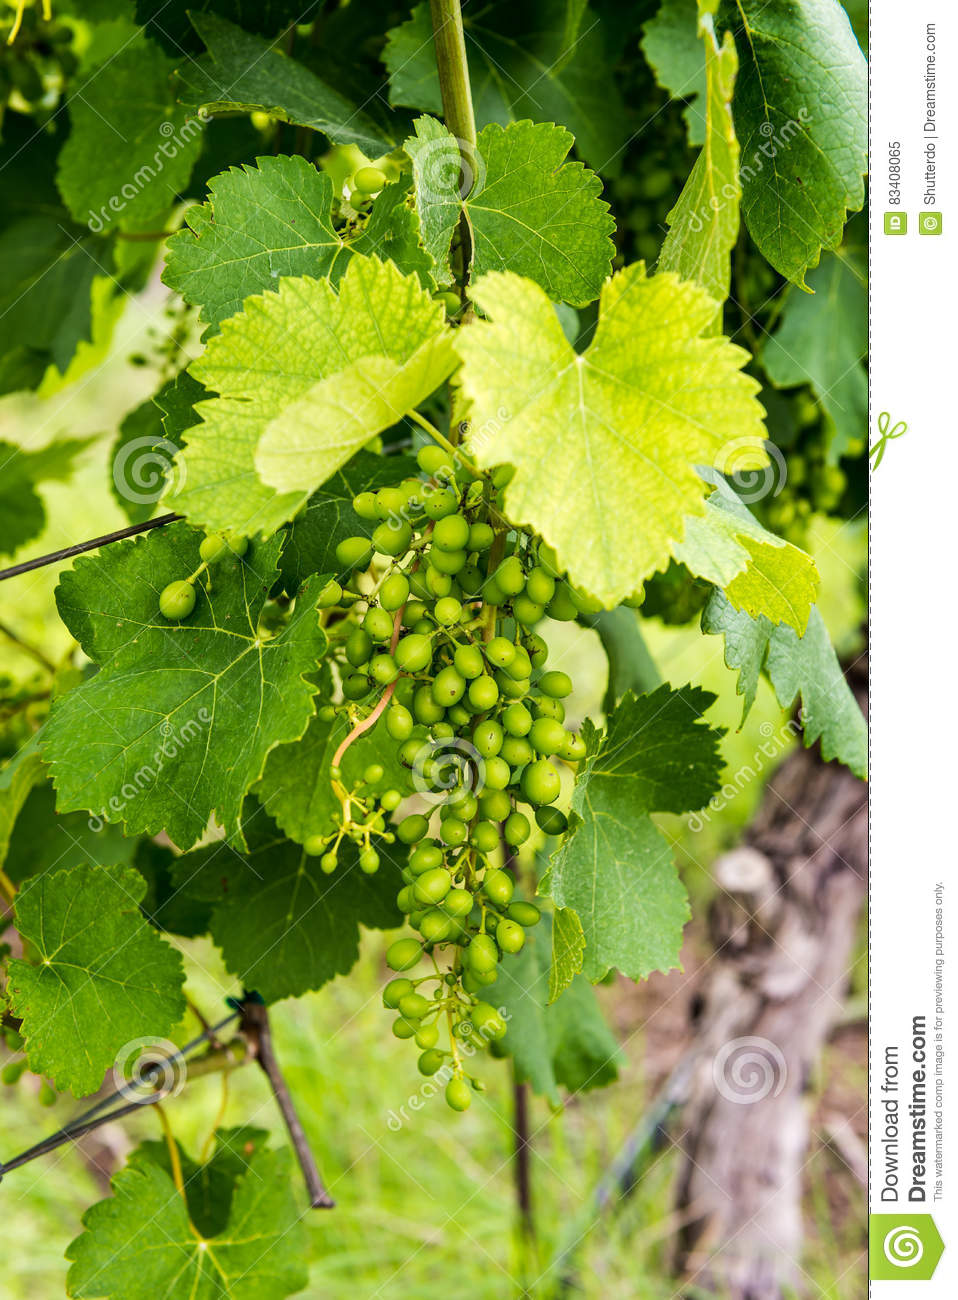 Closeup view of early spring grapes in a vineyard